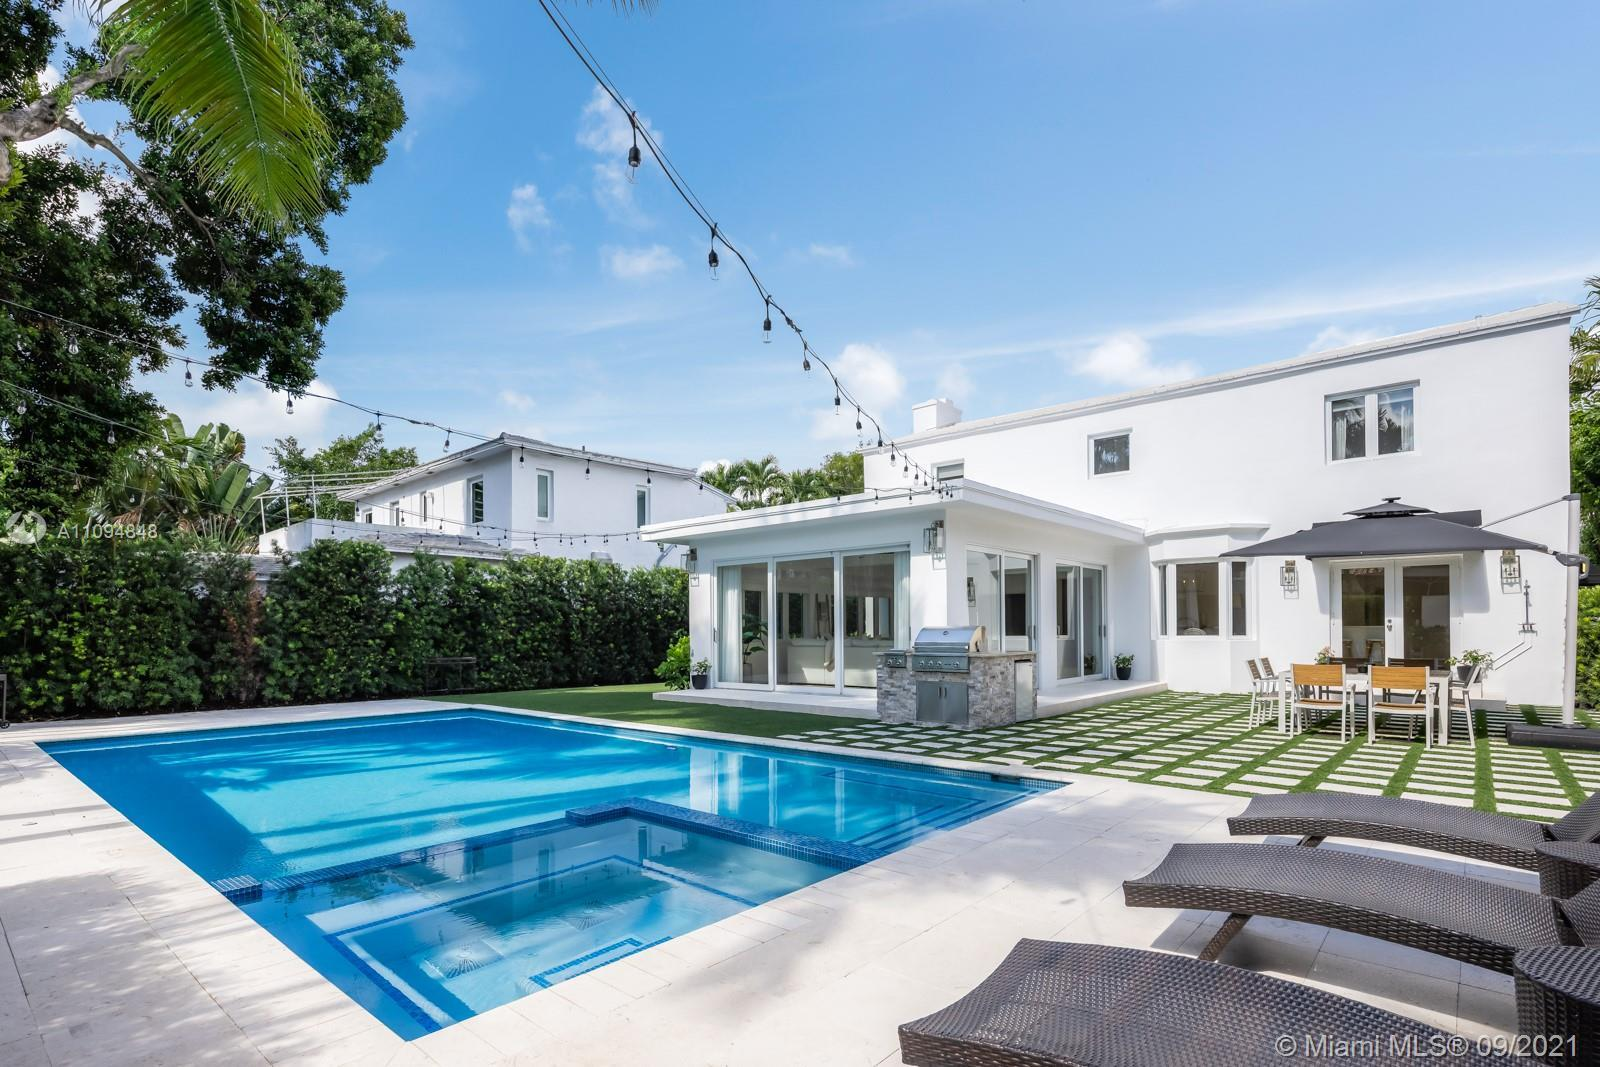 Located on highly sought-after North Bay Road, this move-in-ready Miami Beach residence is a modern